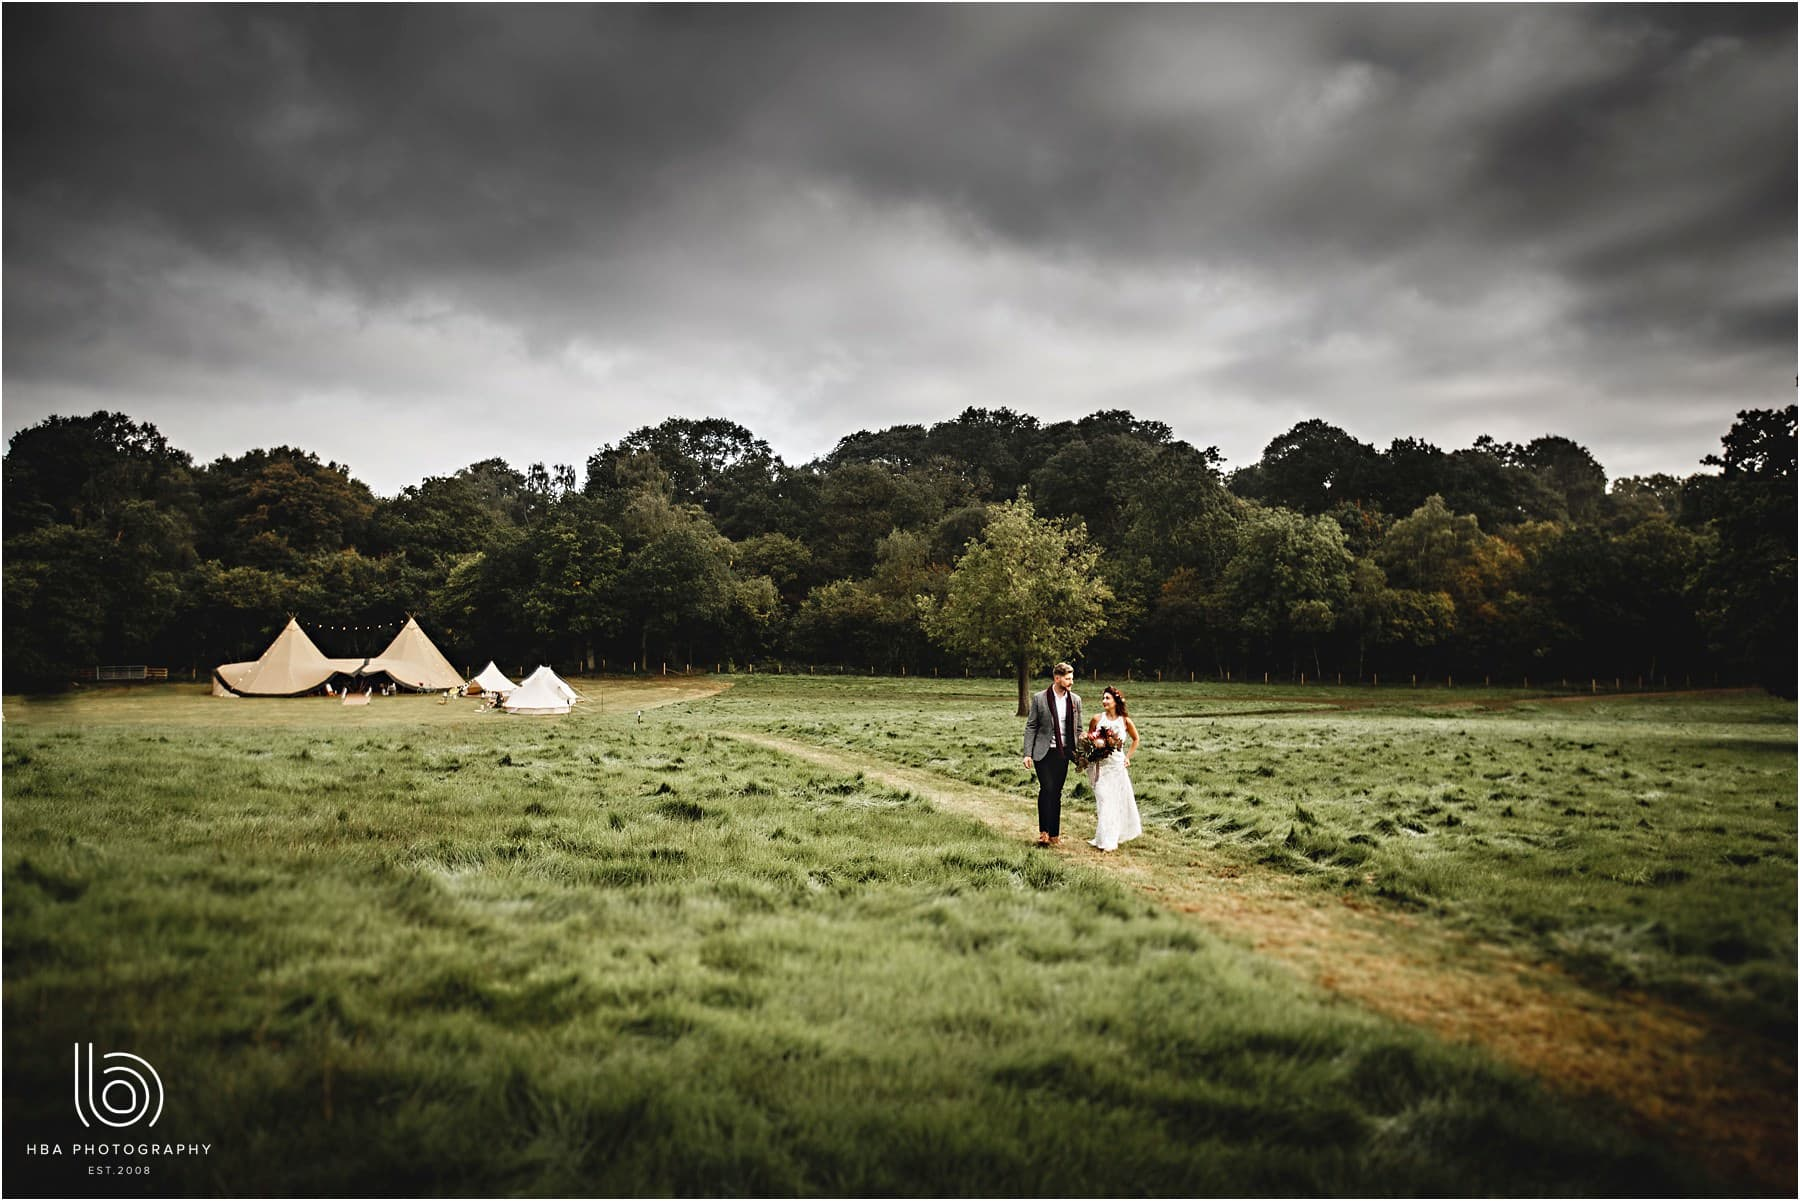 Bride and groom walking in the field with the tipi in the background